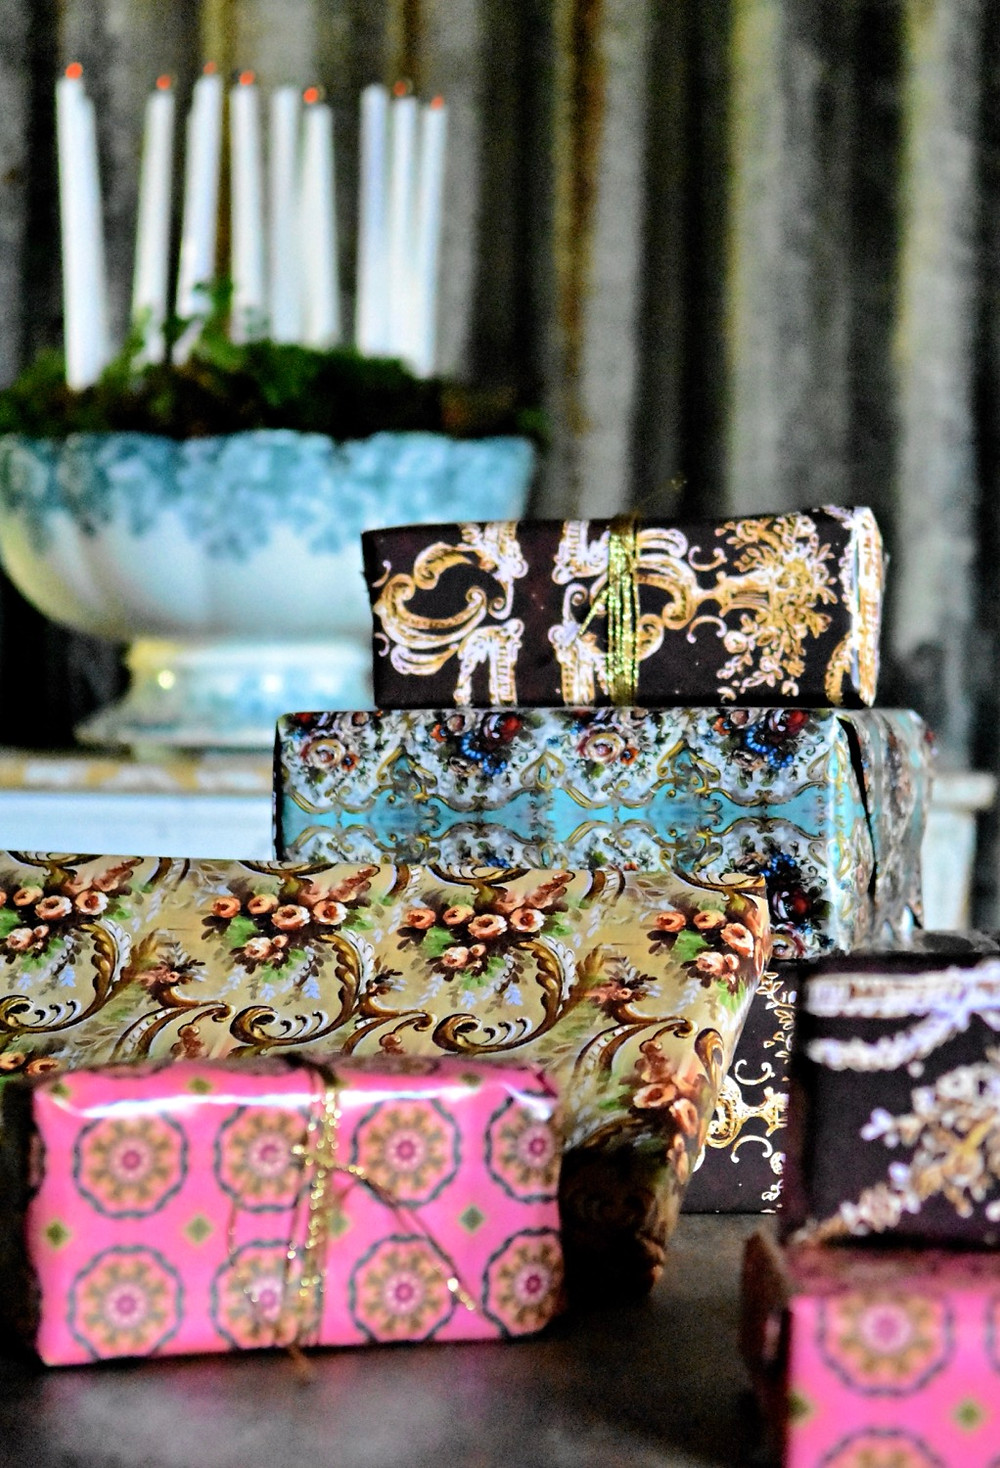 Artist Jennifer Lanne wrapping papers for Decorum